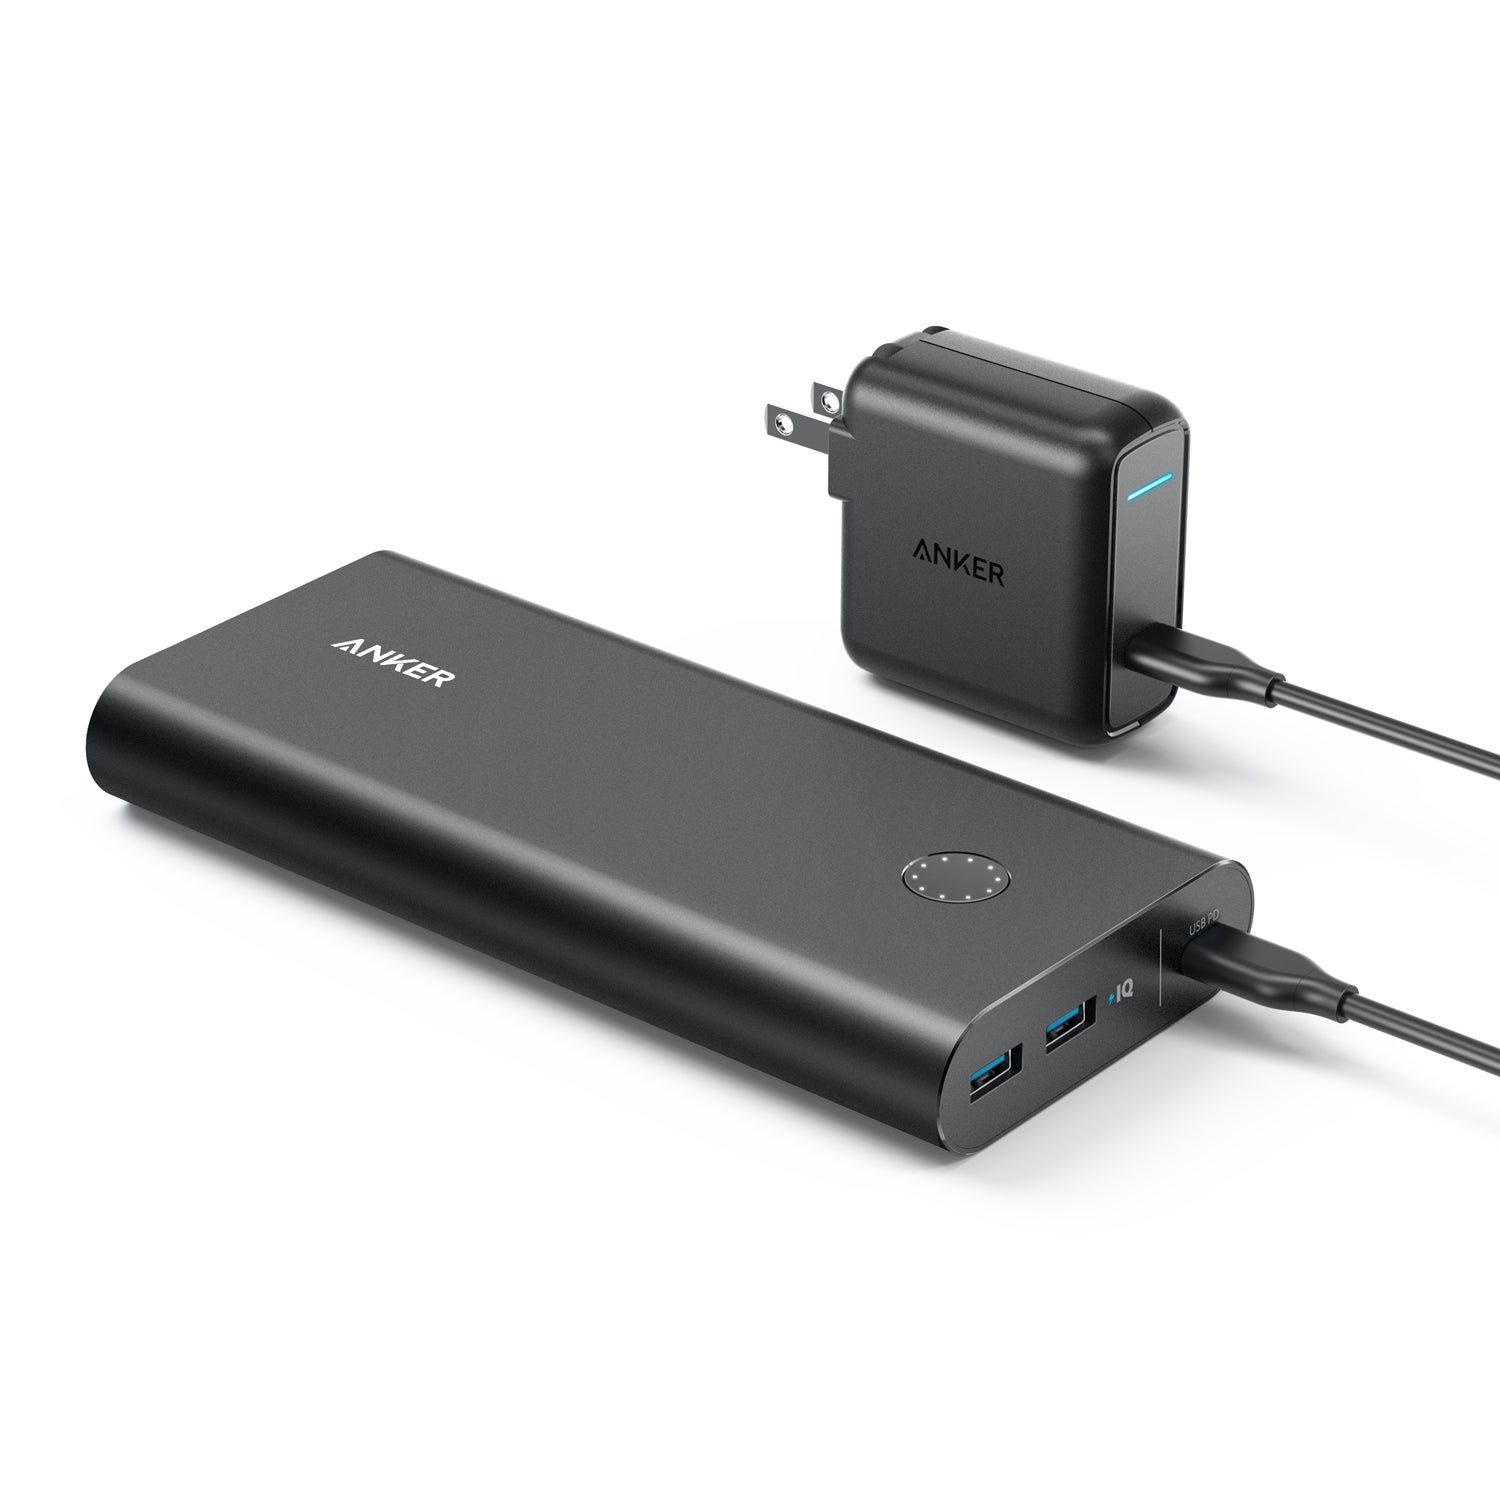 Best Power Banks Of 2018 The Top Usb Portable Chargers For Your Powerbank Anker Powercore 10000mah Black With Quick Charge 30 26800 Pd